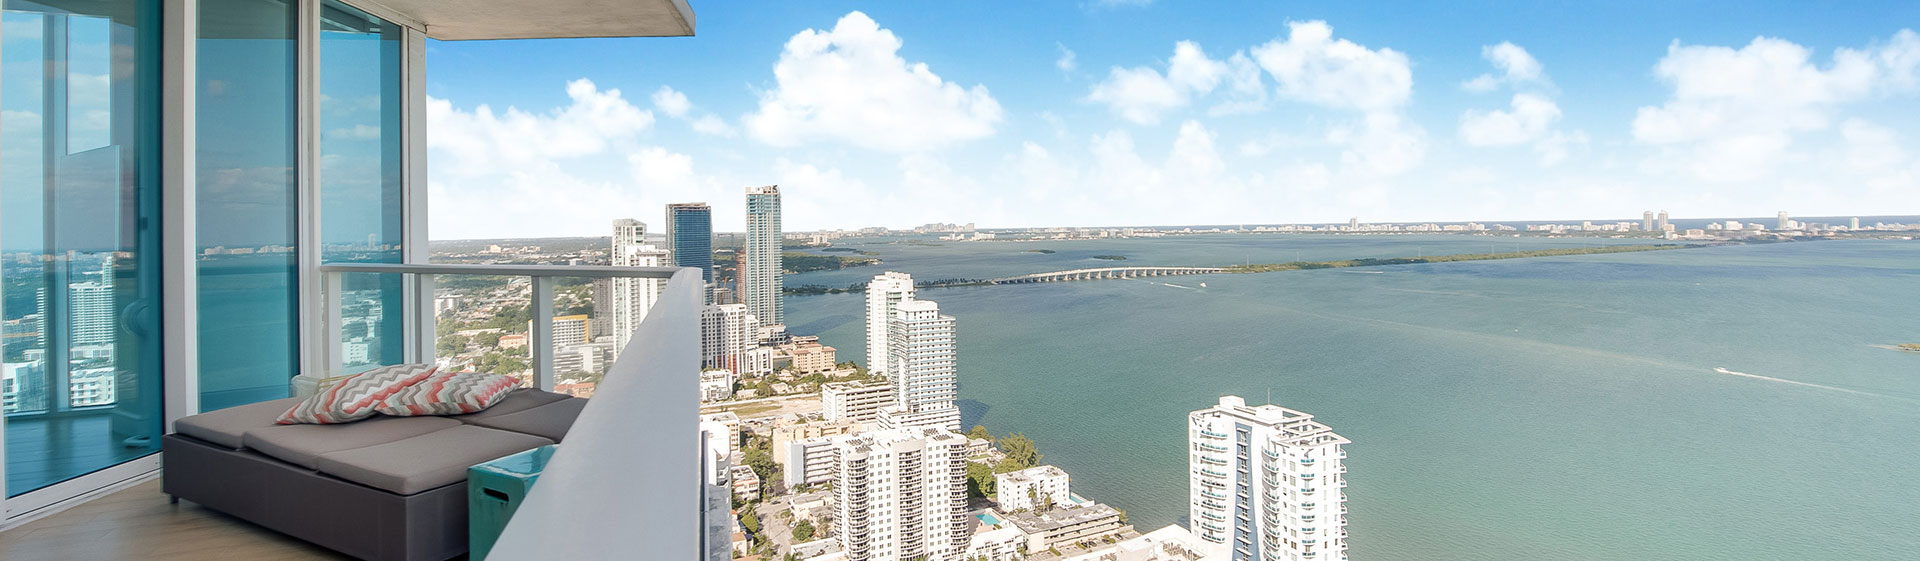 Paramount bay 786 999 9739 paramount bay miami is a for Paramount on the bay